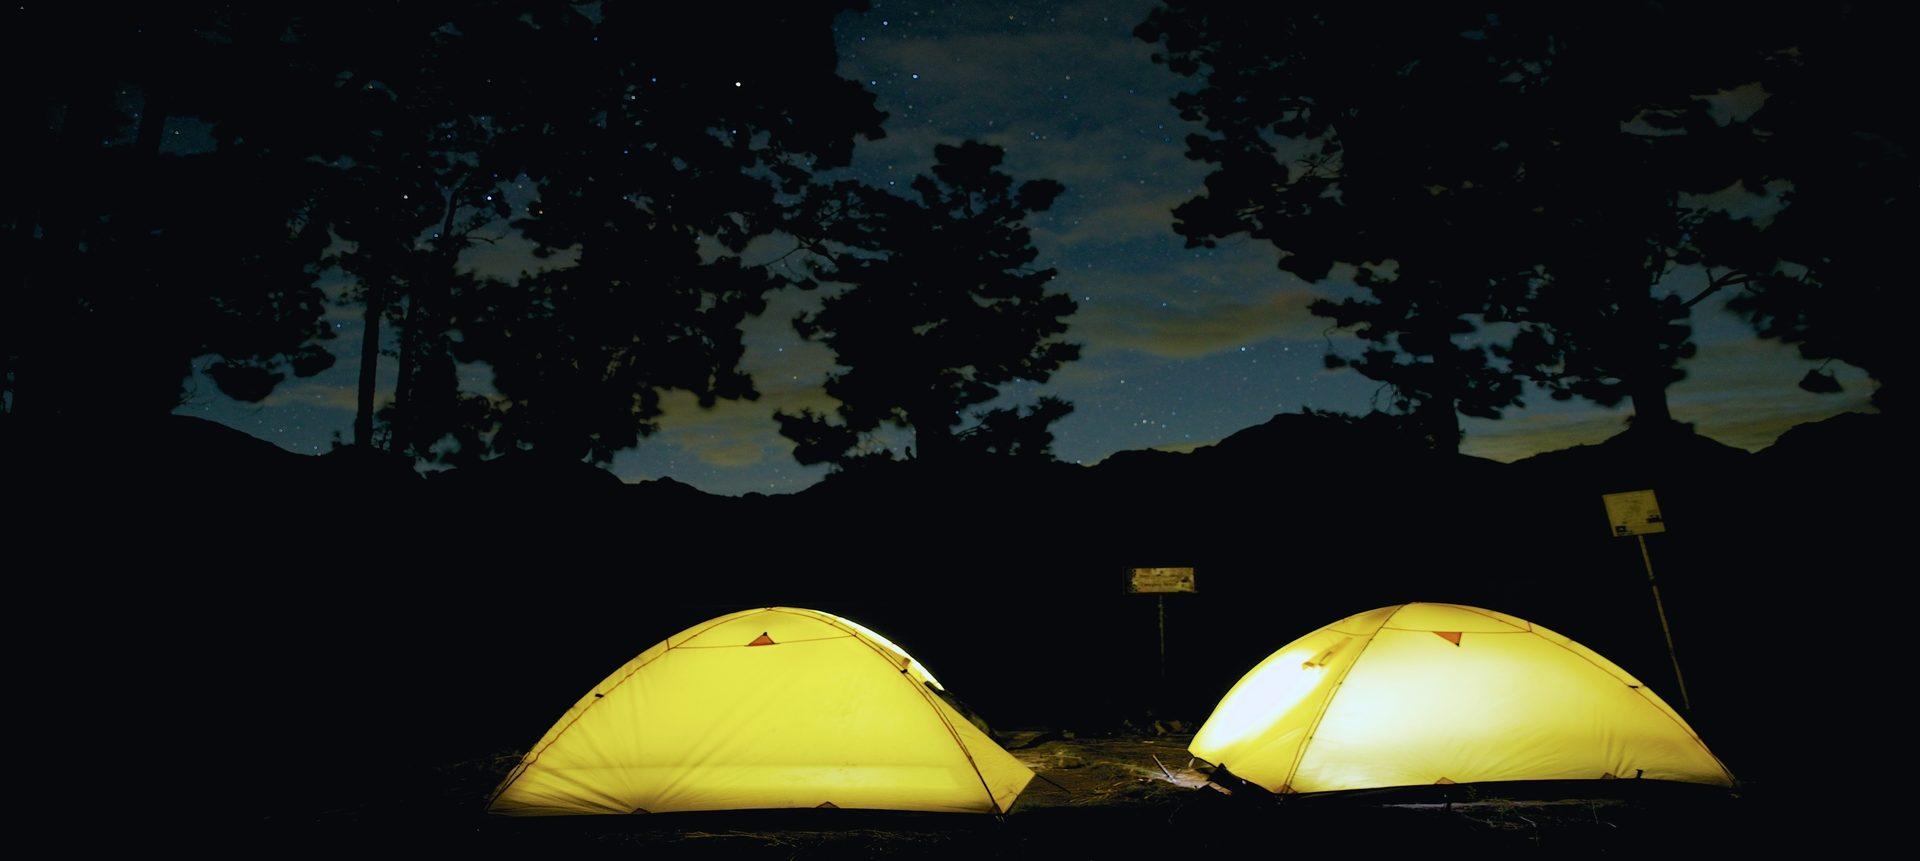 The 5 Best Places To Go Camping Around the World